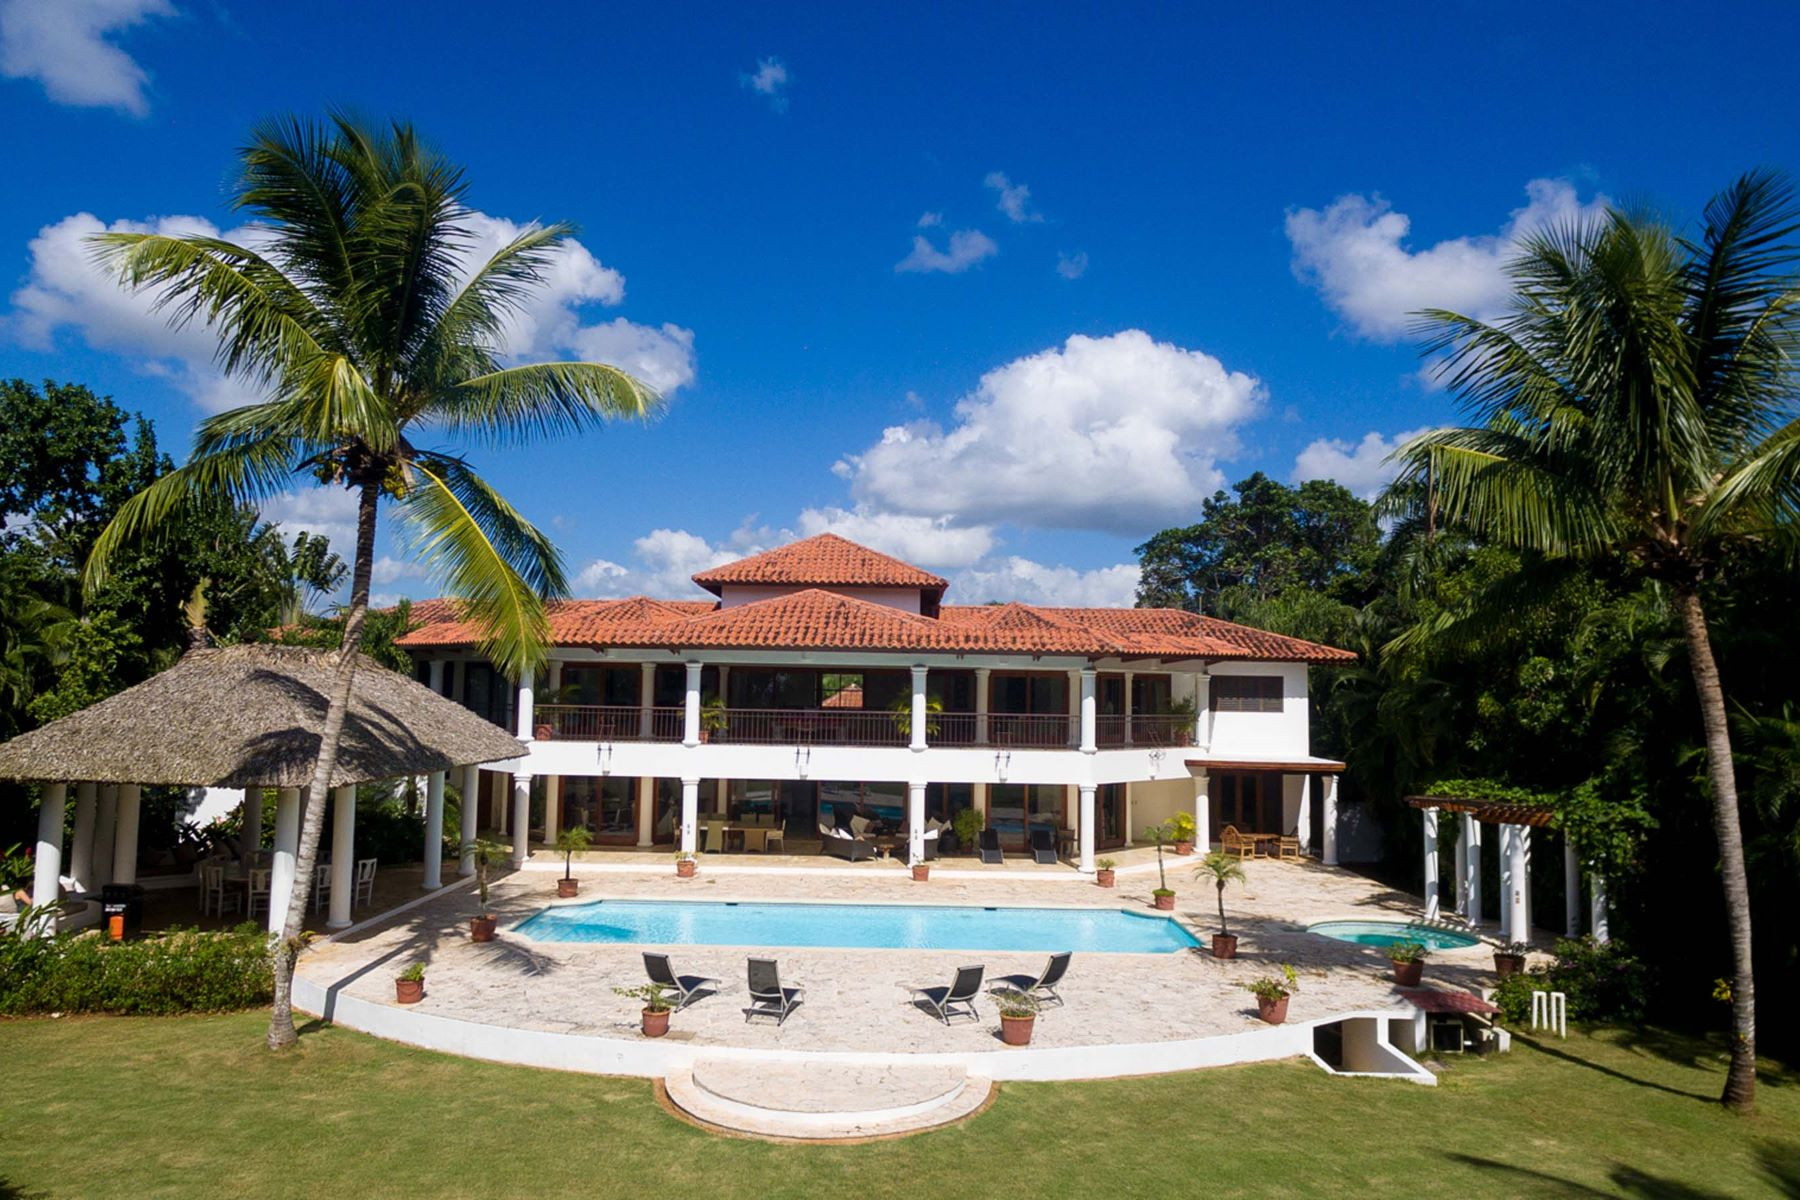 Single Family Home for Sale at A large and inviting, French-style home with excellent views Casa De Campo, La Romana Dominican Republic